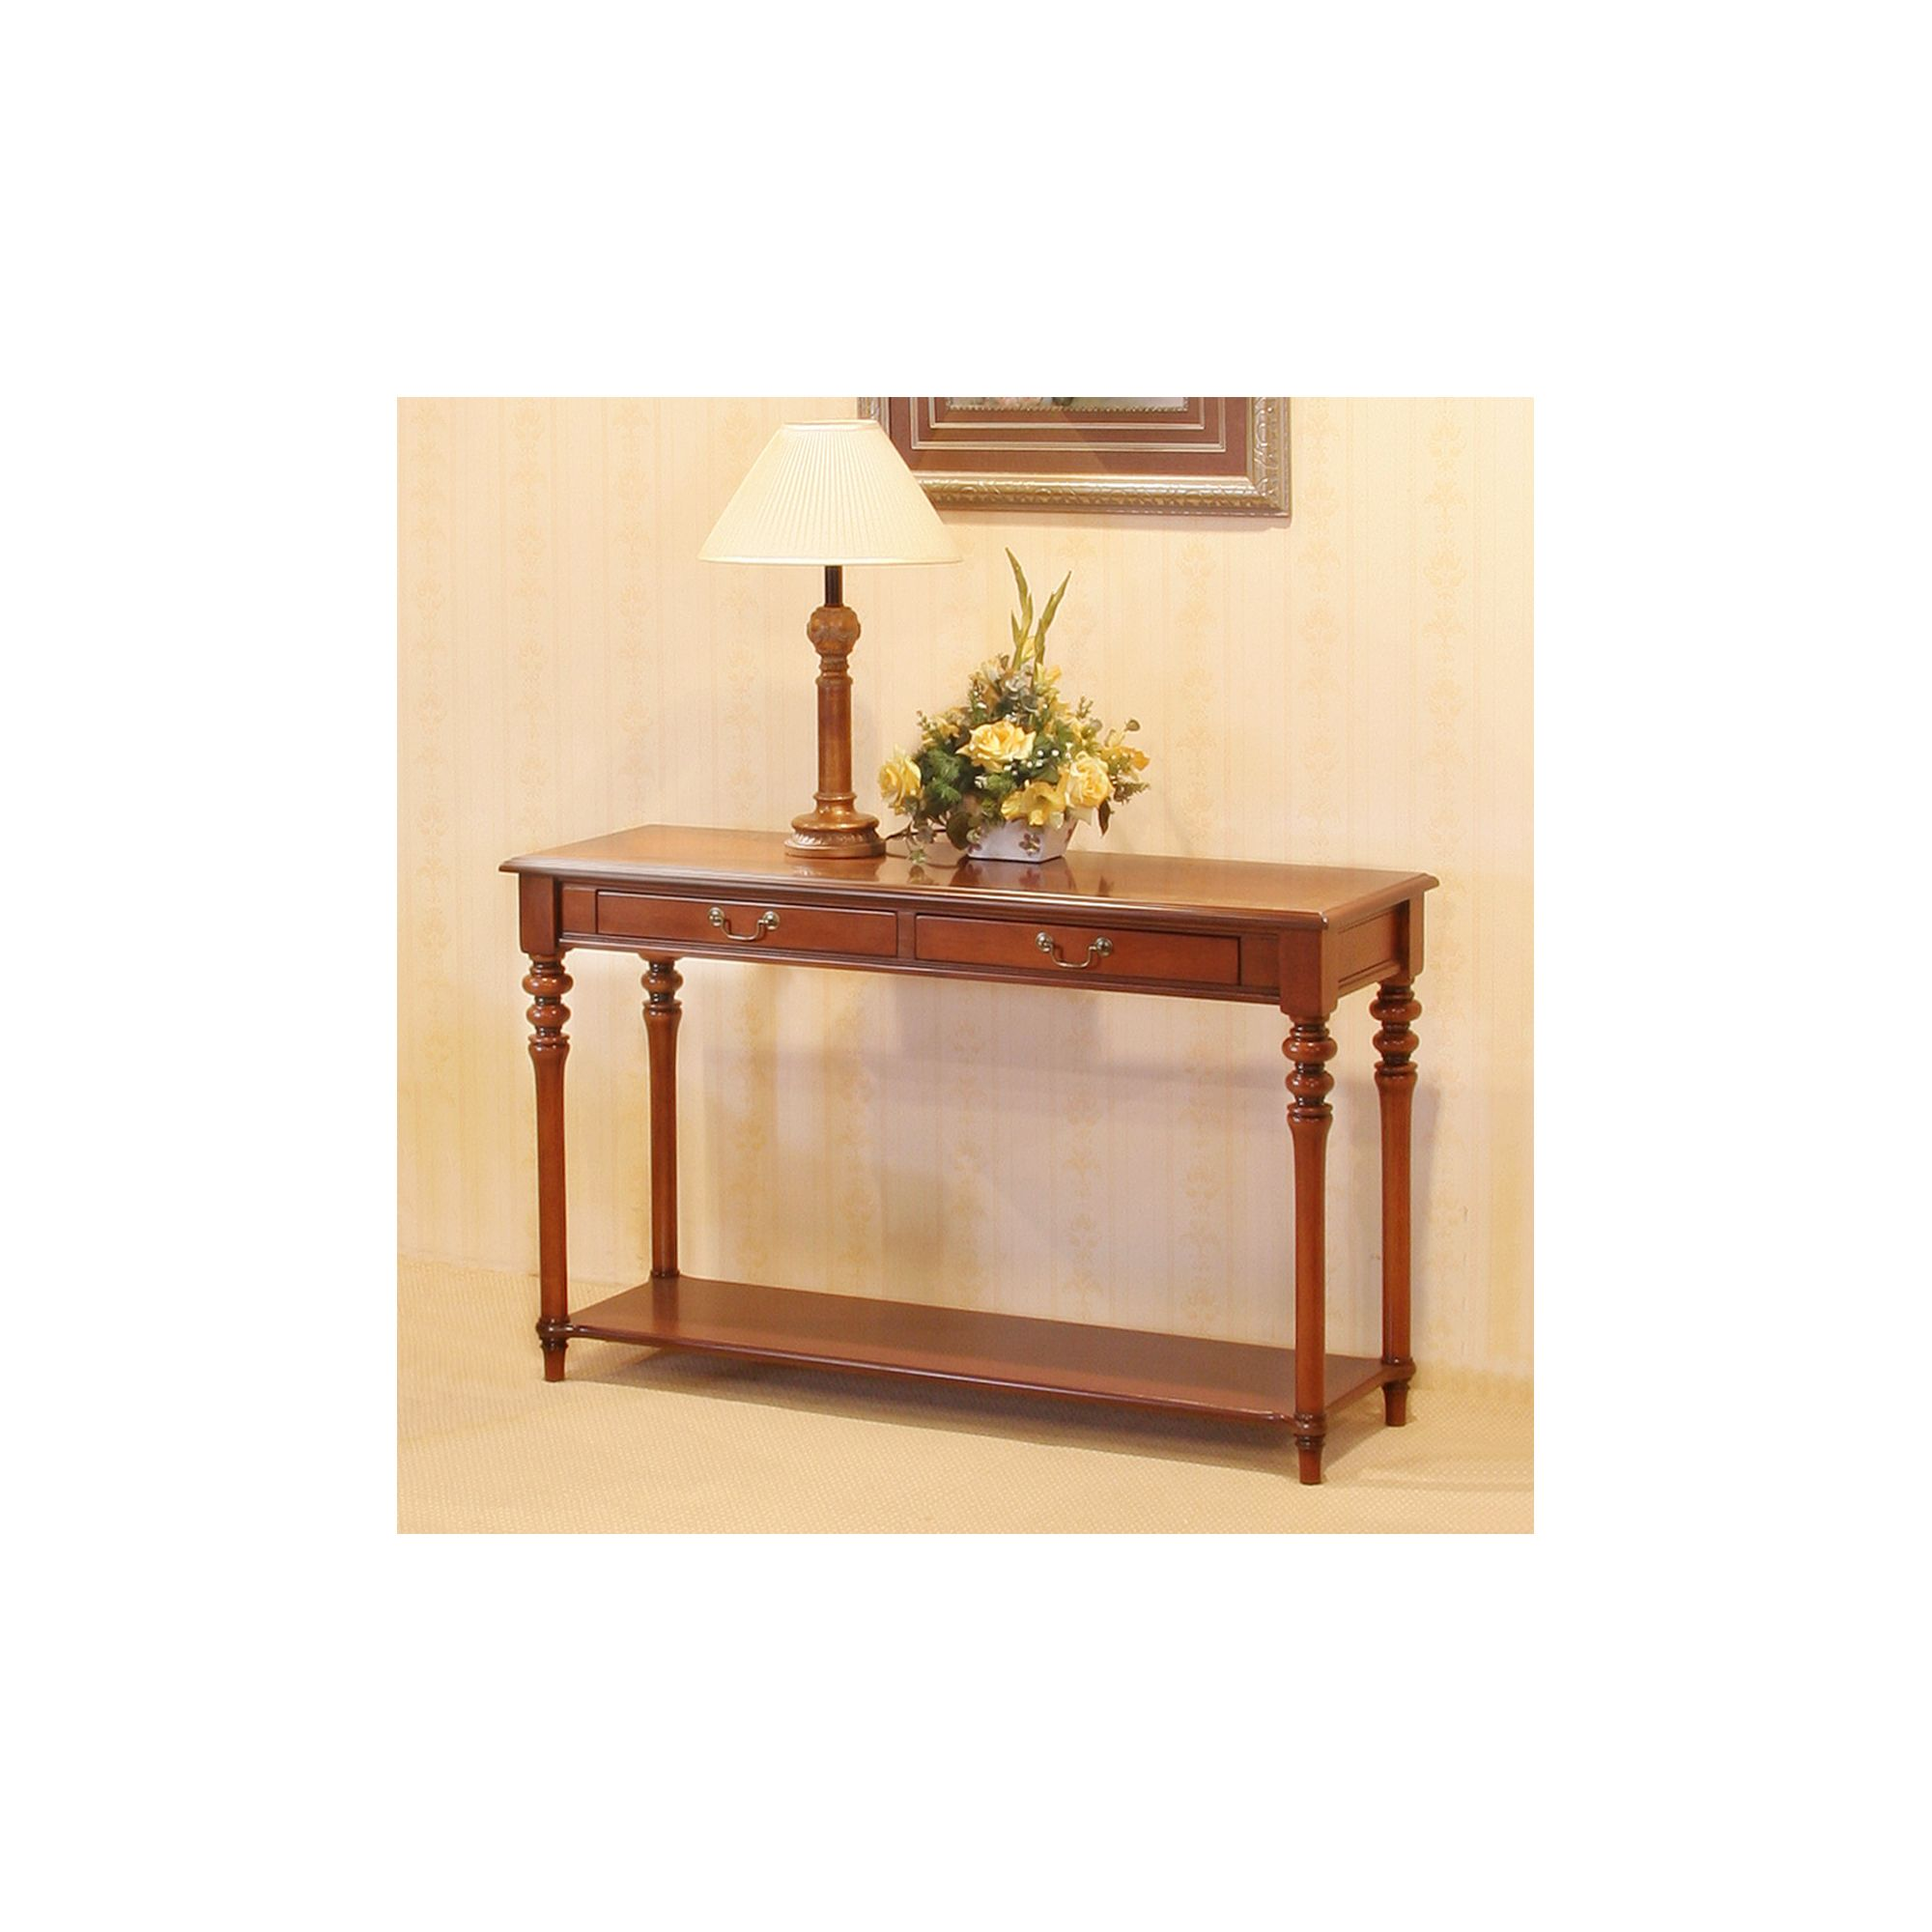 Other Solway Furniture Aspen Console Table Hall Tables For Your Home